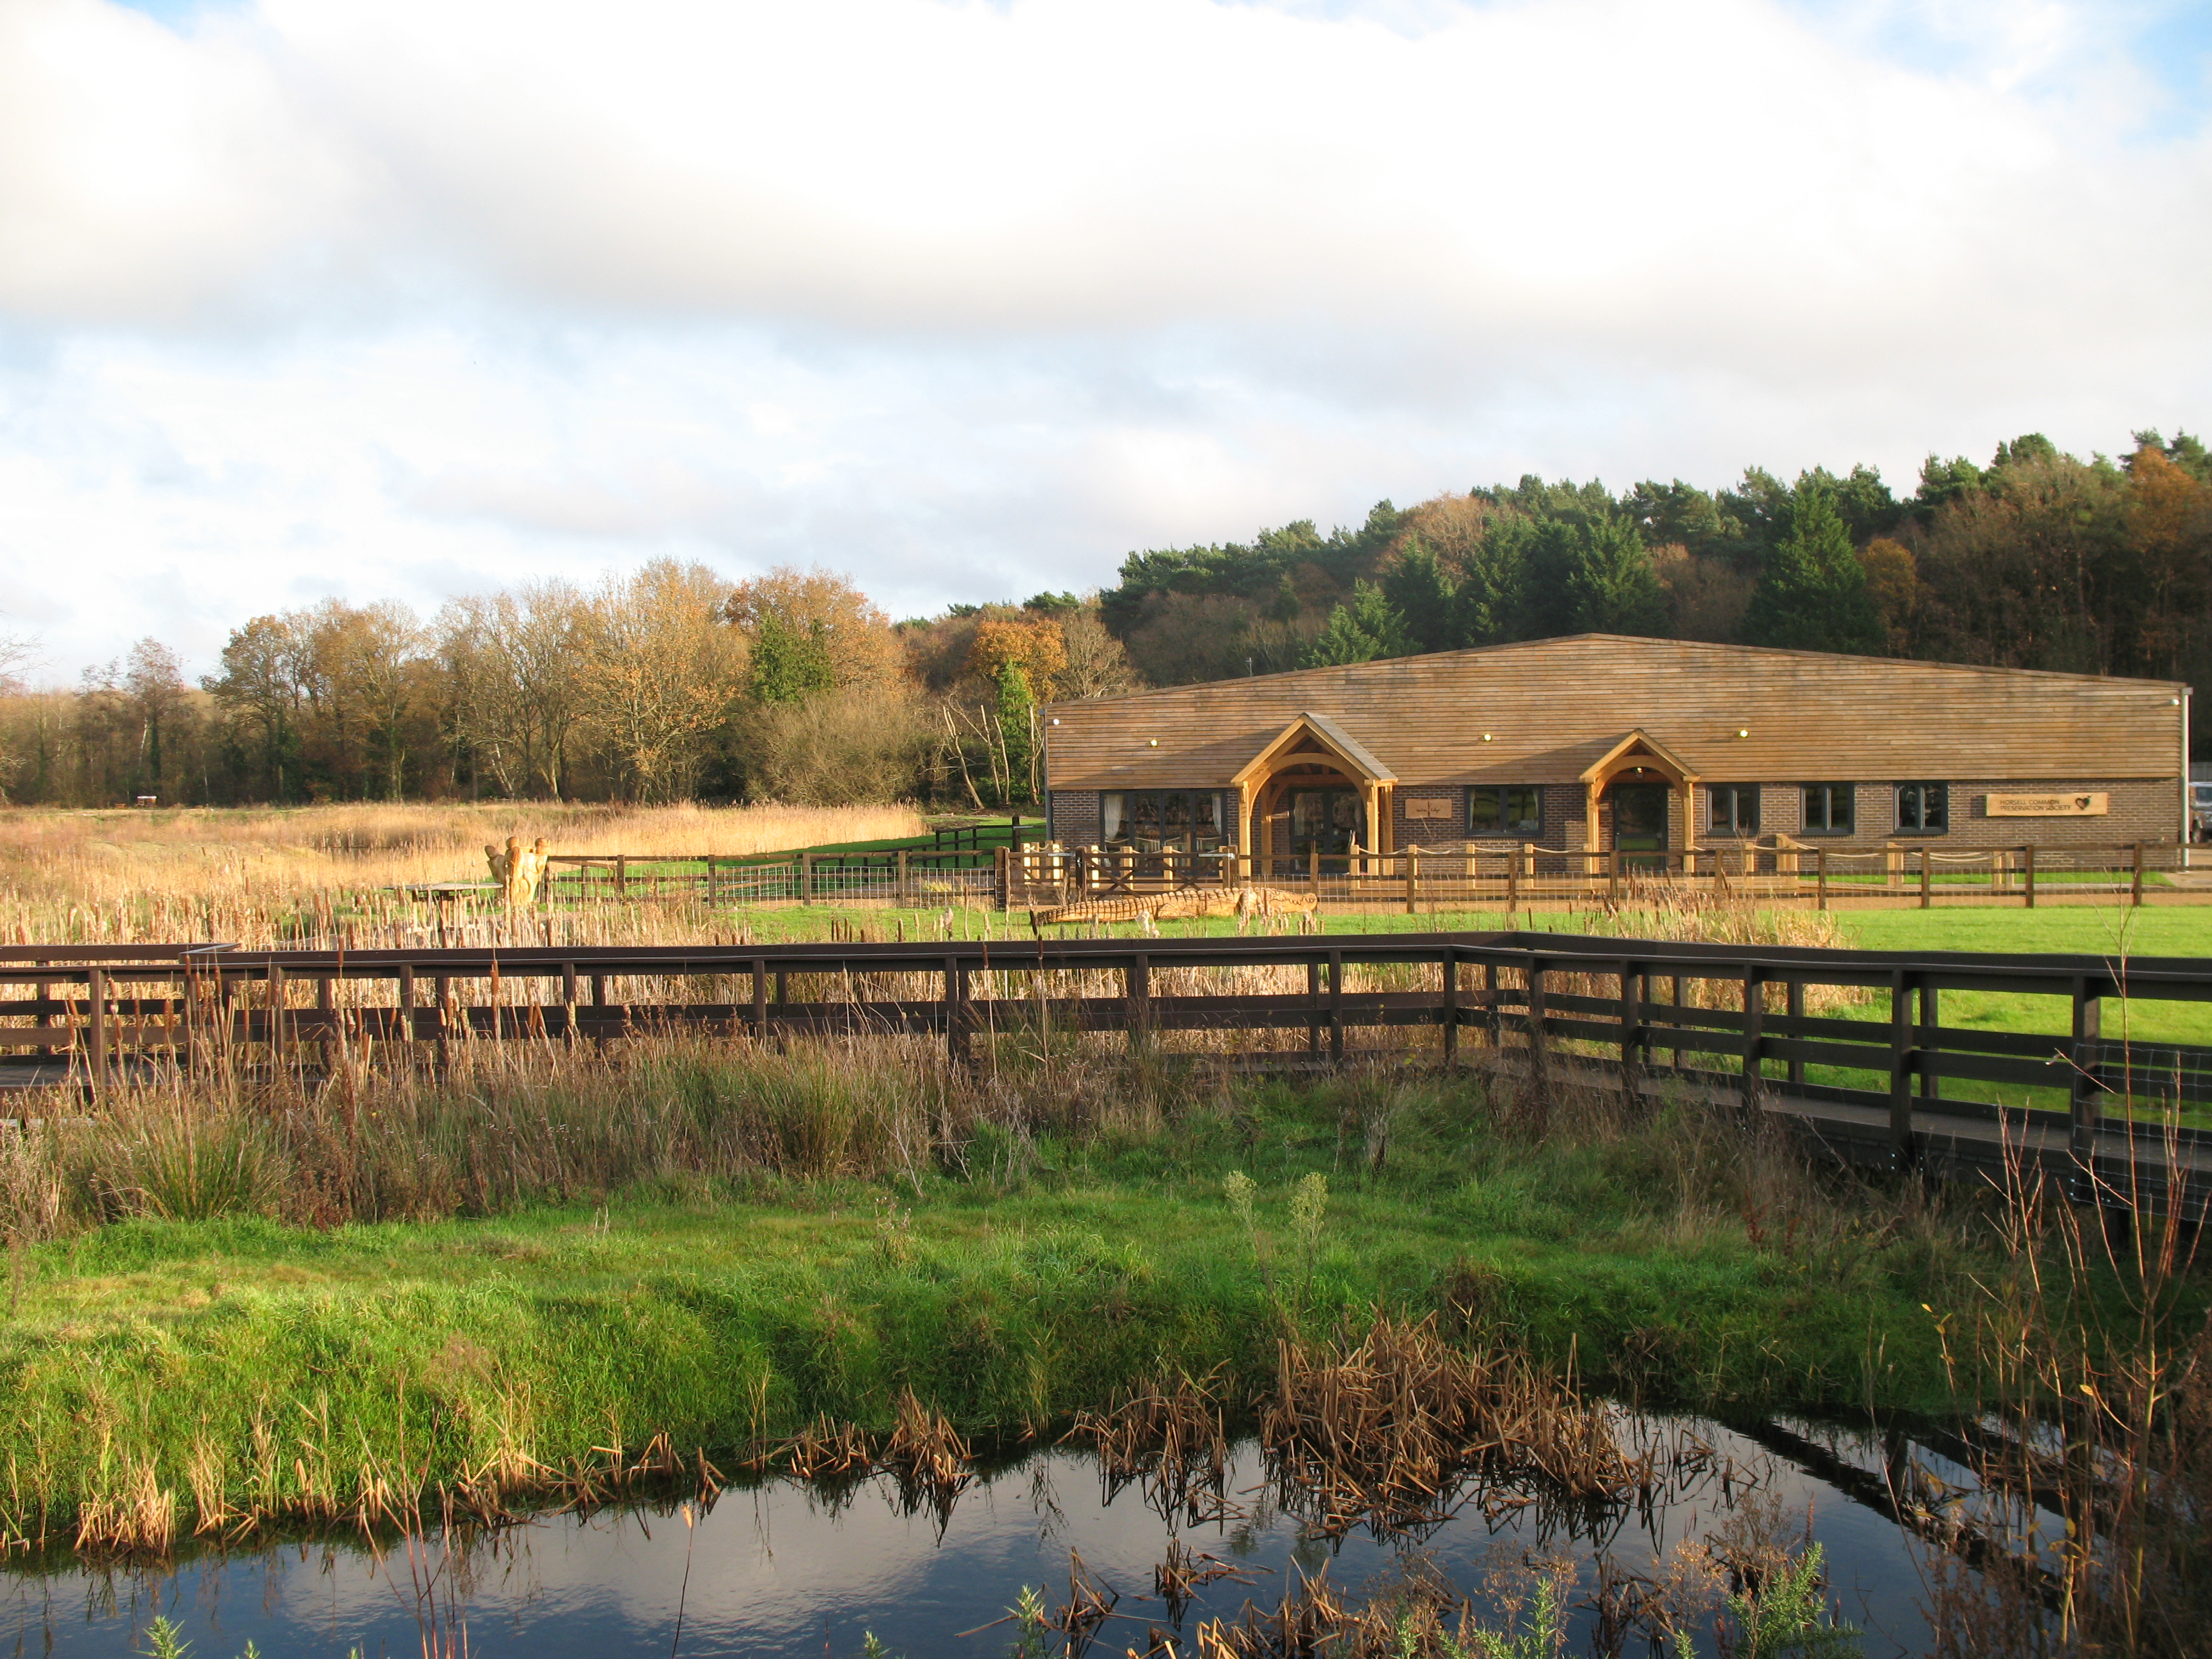 Heather Farm Cafe - Horsell Common Preservation Society